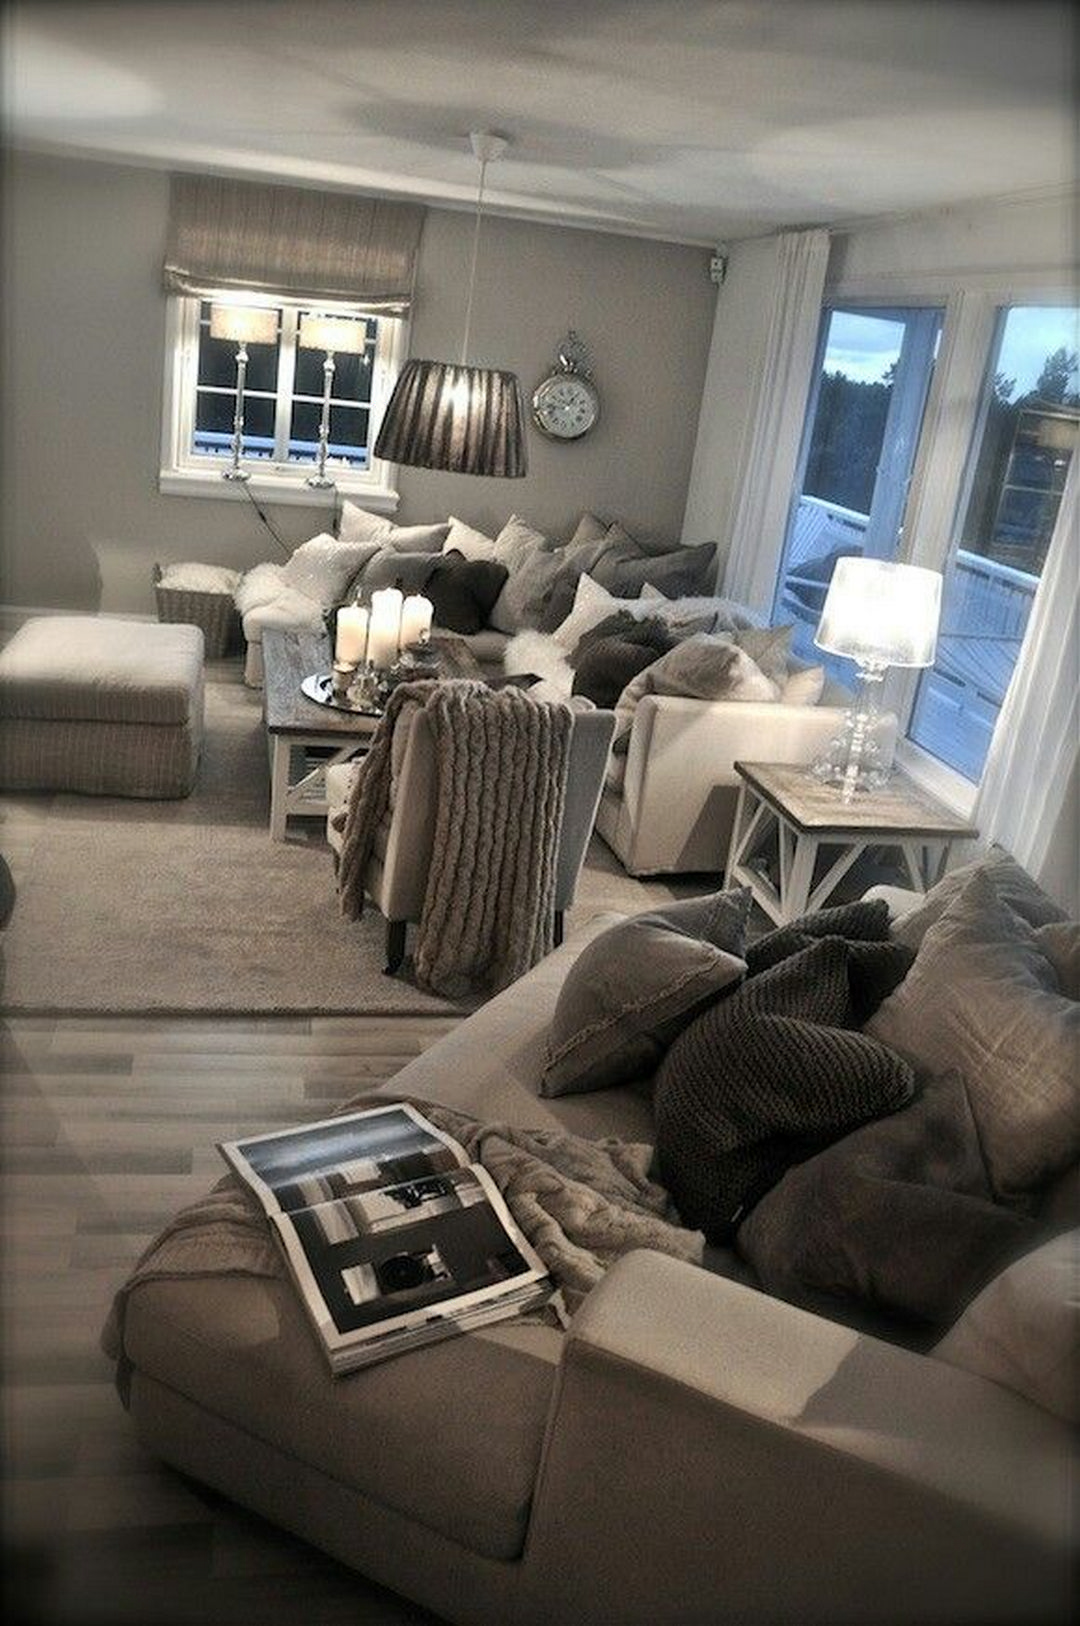 85 Adorable Living Room Pillow Ideas | Furniture Design Ideas ... on